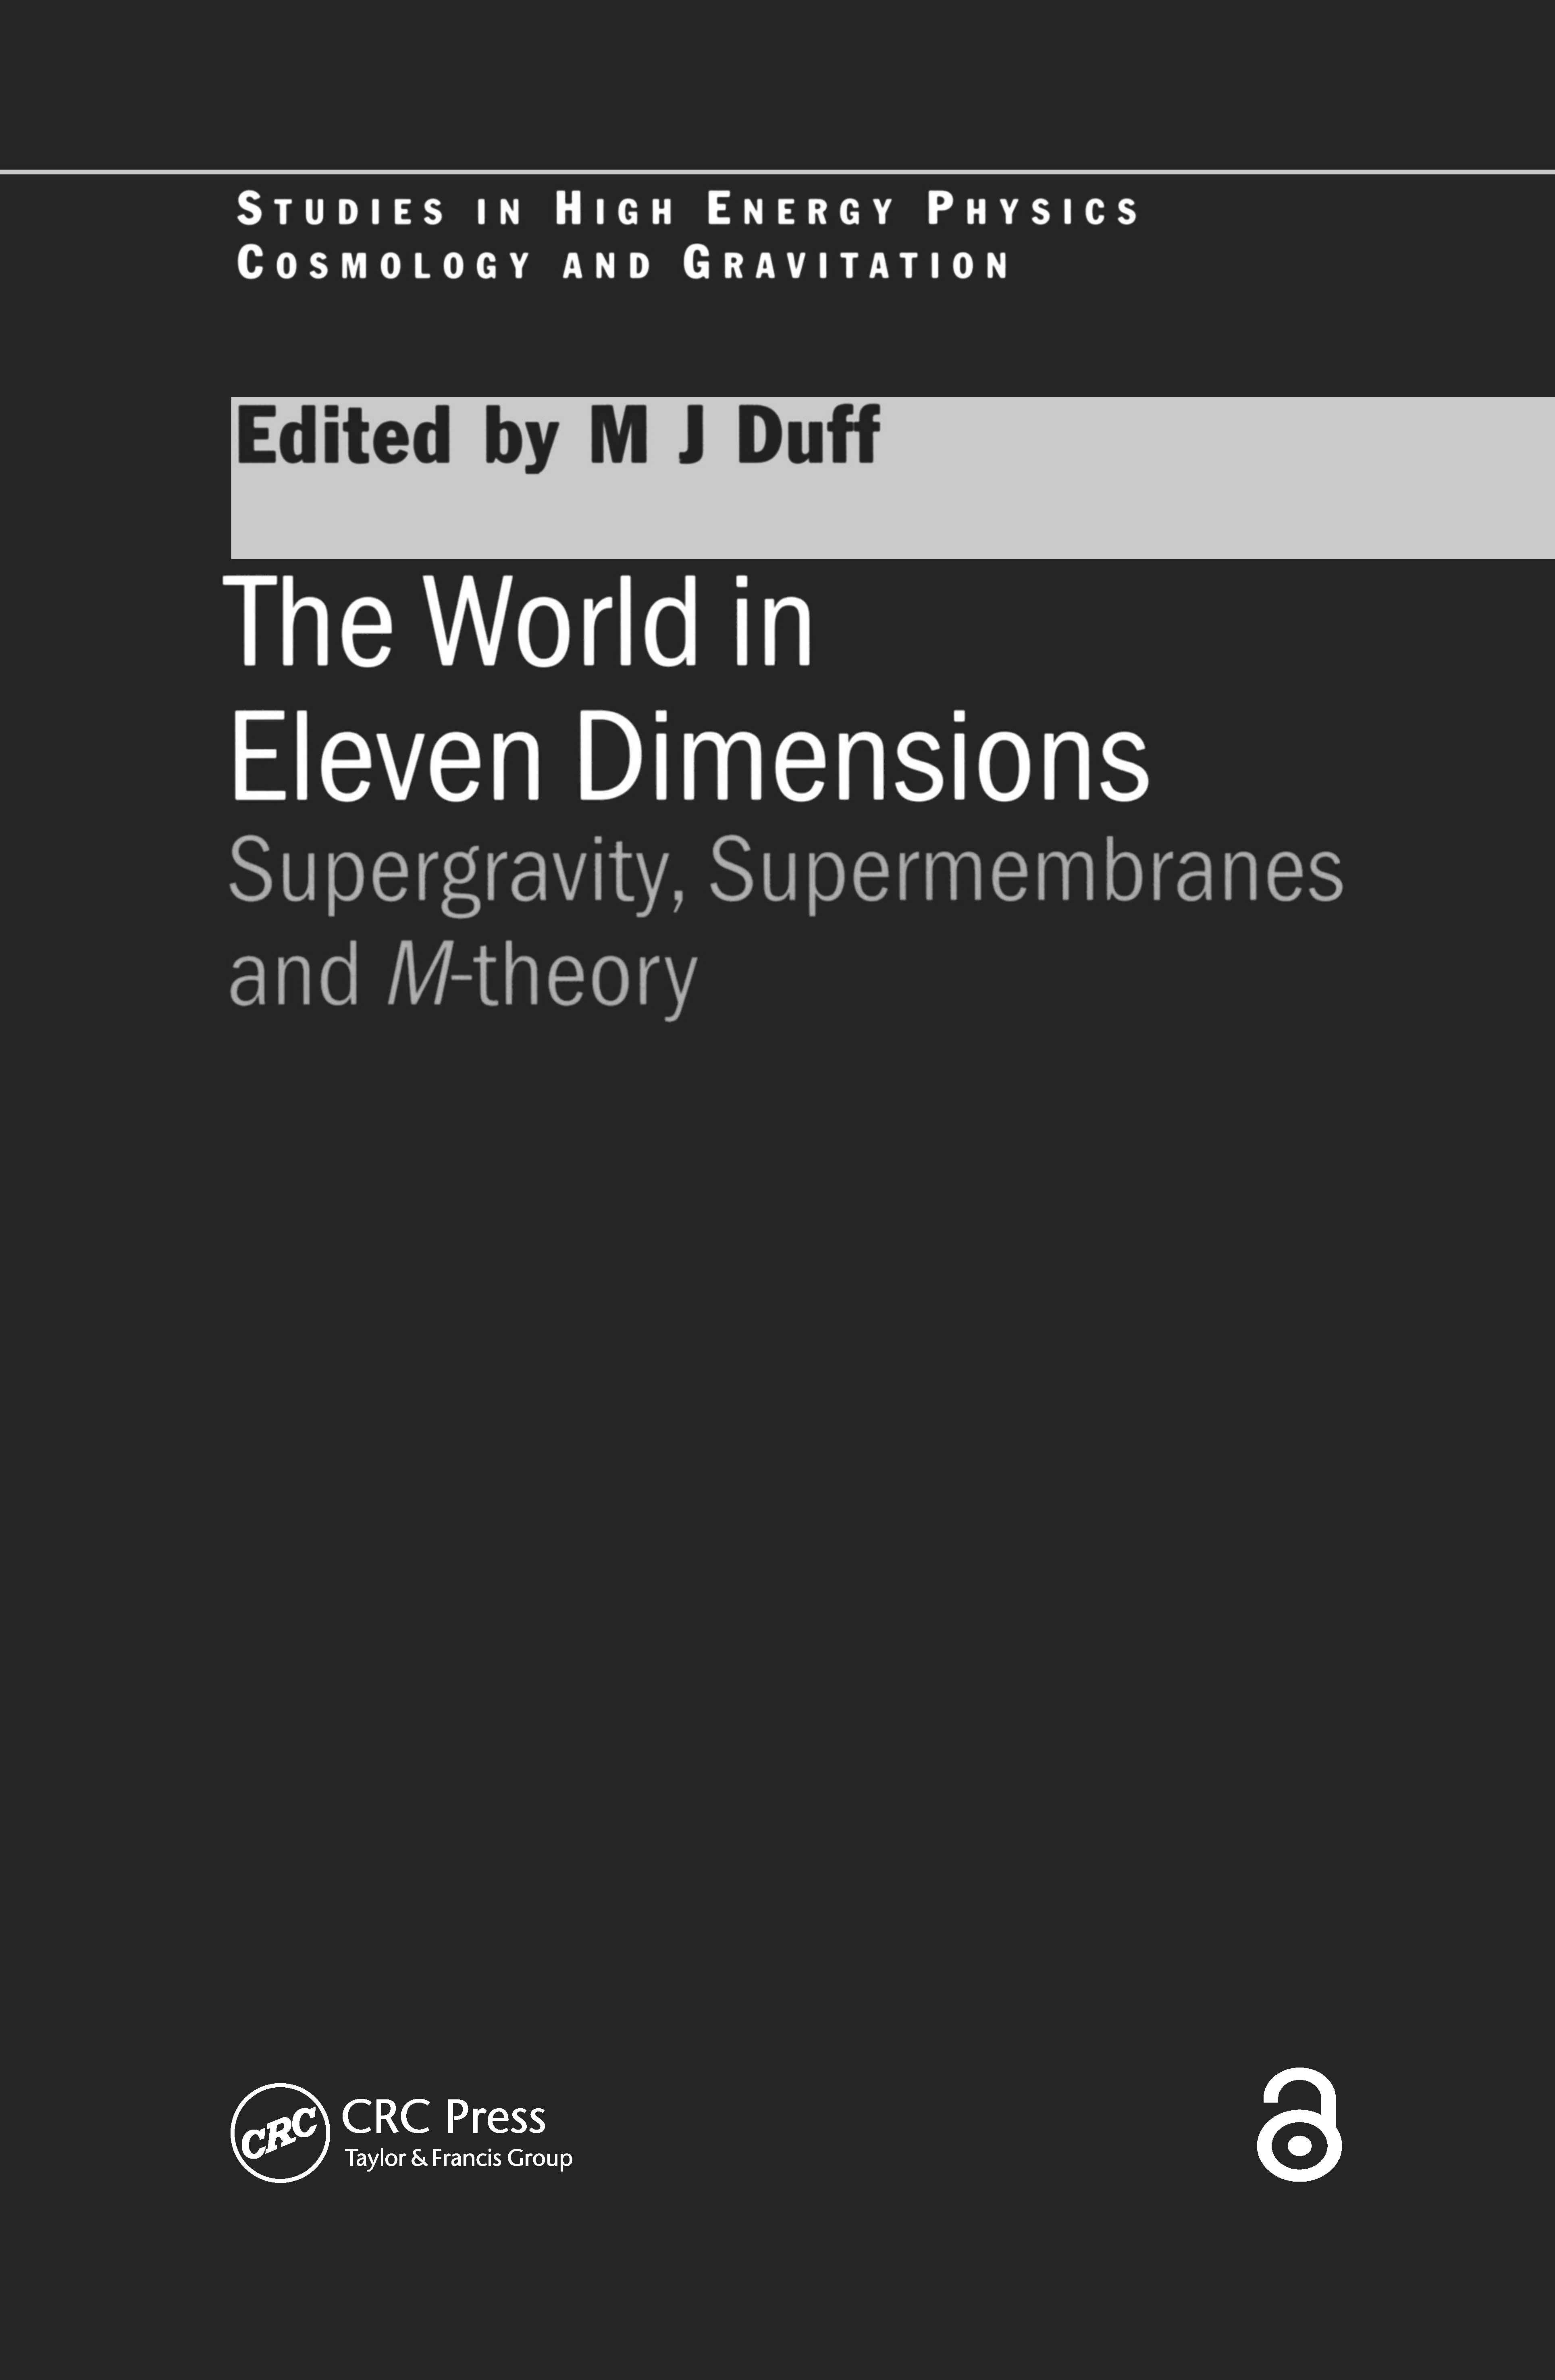 The World in Eleven Dimensions: Supergravity, supermembranes and M-theory book cover